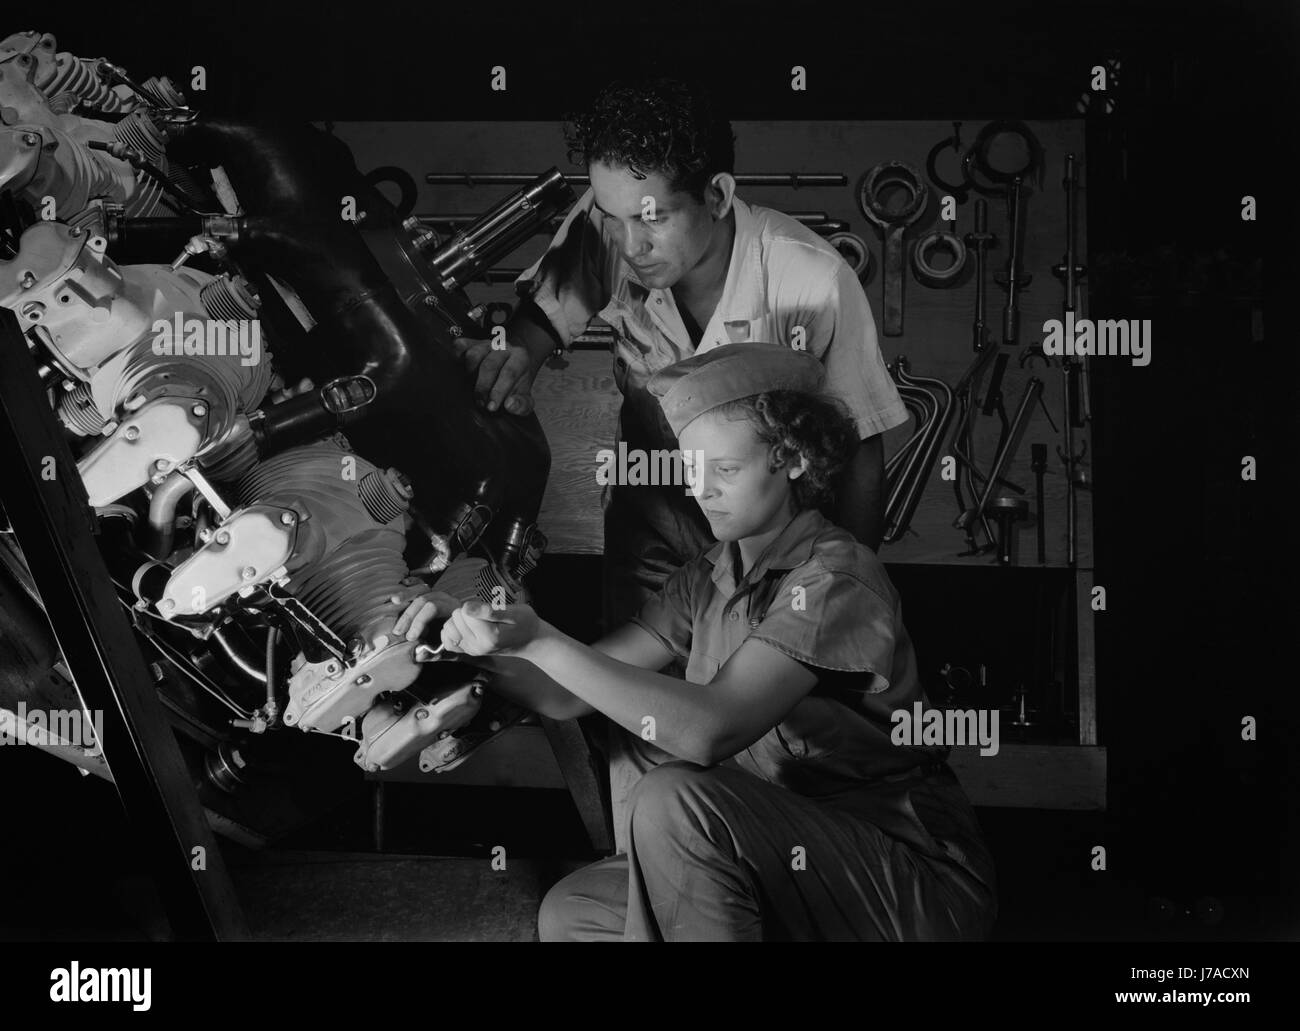 An expert mechanic shows a student the tricks of an airplane motor, 1942. - Stock Image